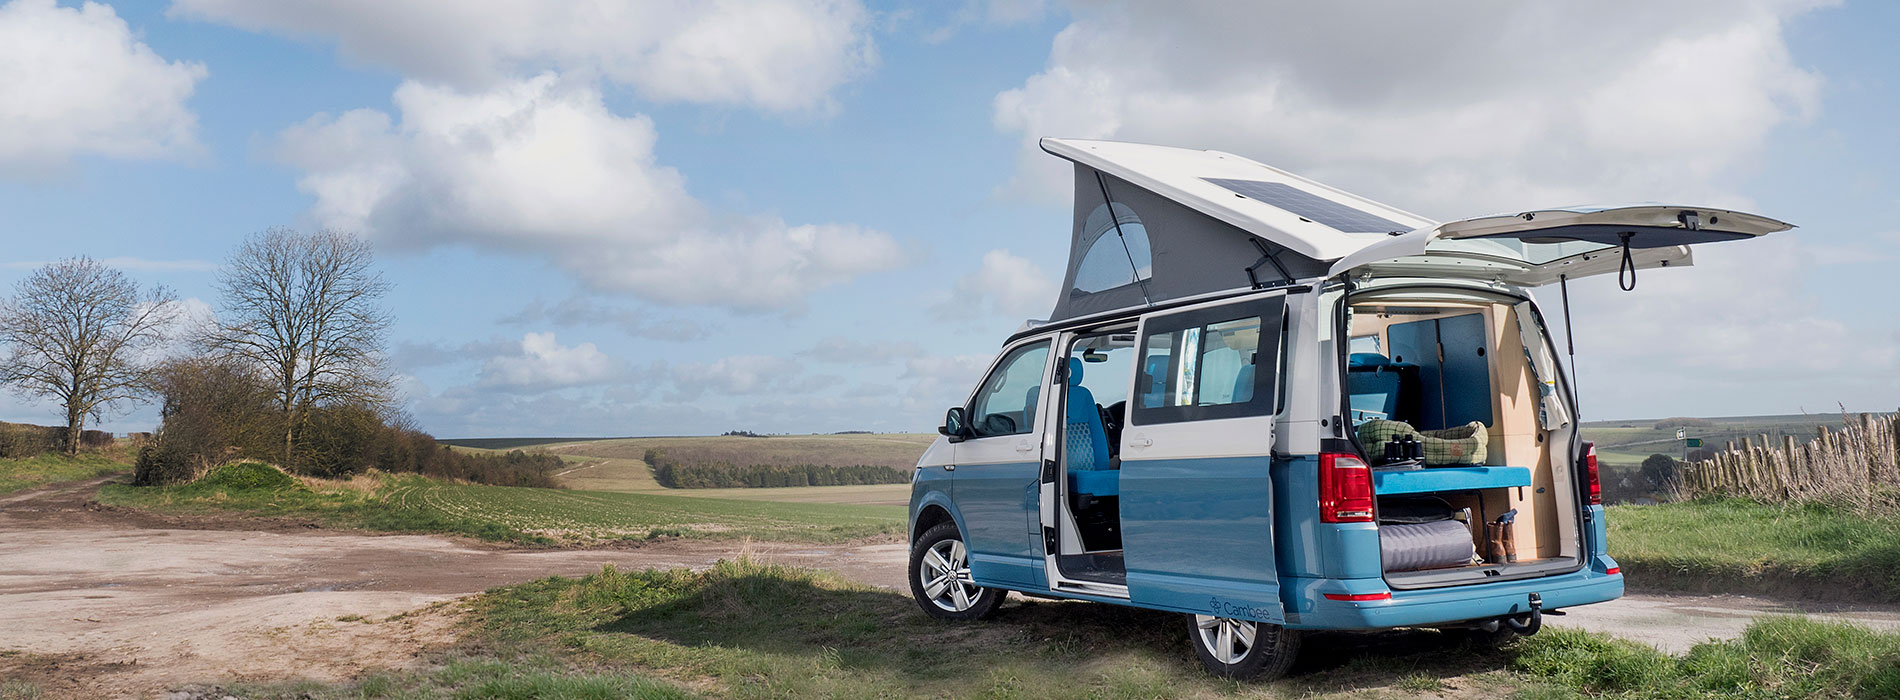 Side view of blue and white parked T6 campervan showing sliding doors and boot open with elevated roof up int he countryside